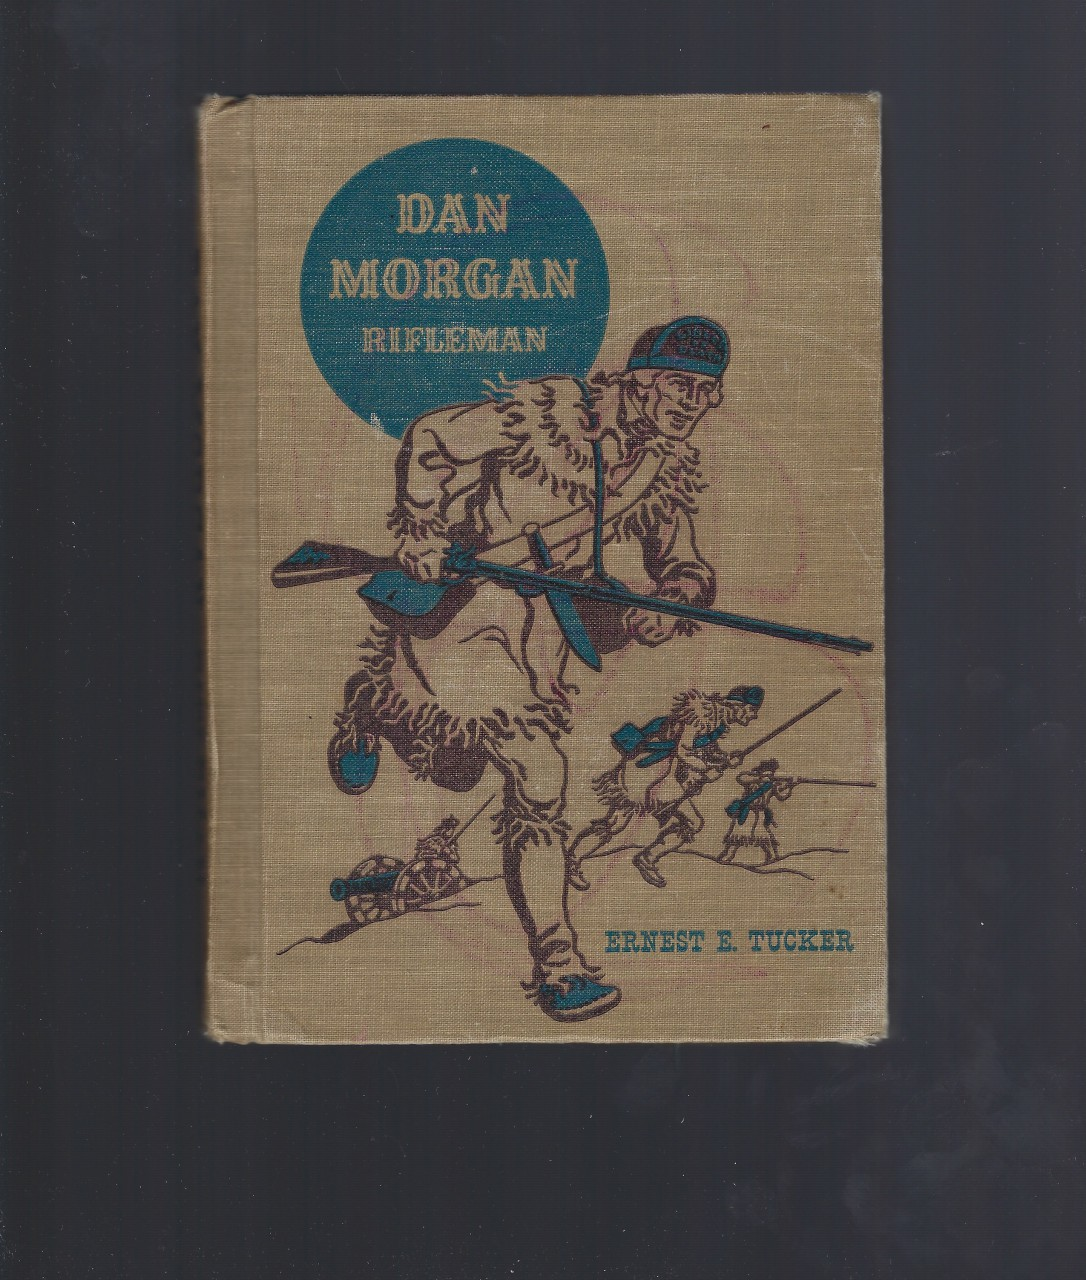 Dan Morgan Rifleman 1st Ed (The American Adventure Series) 1955, Ernest E. Tucker; Emmett A. Betts [Editor]; Jack Merryweather [Illustrator];